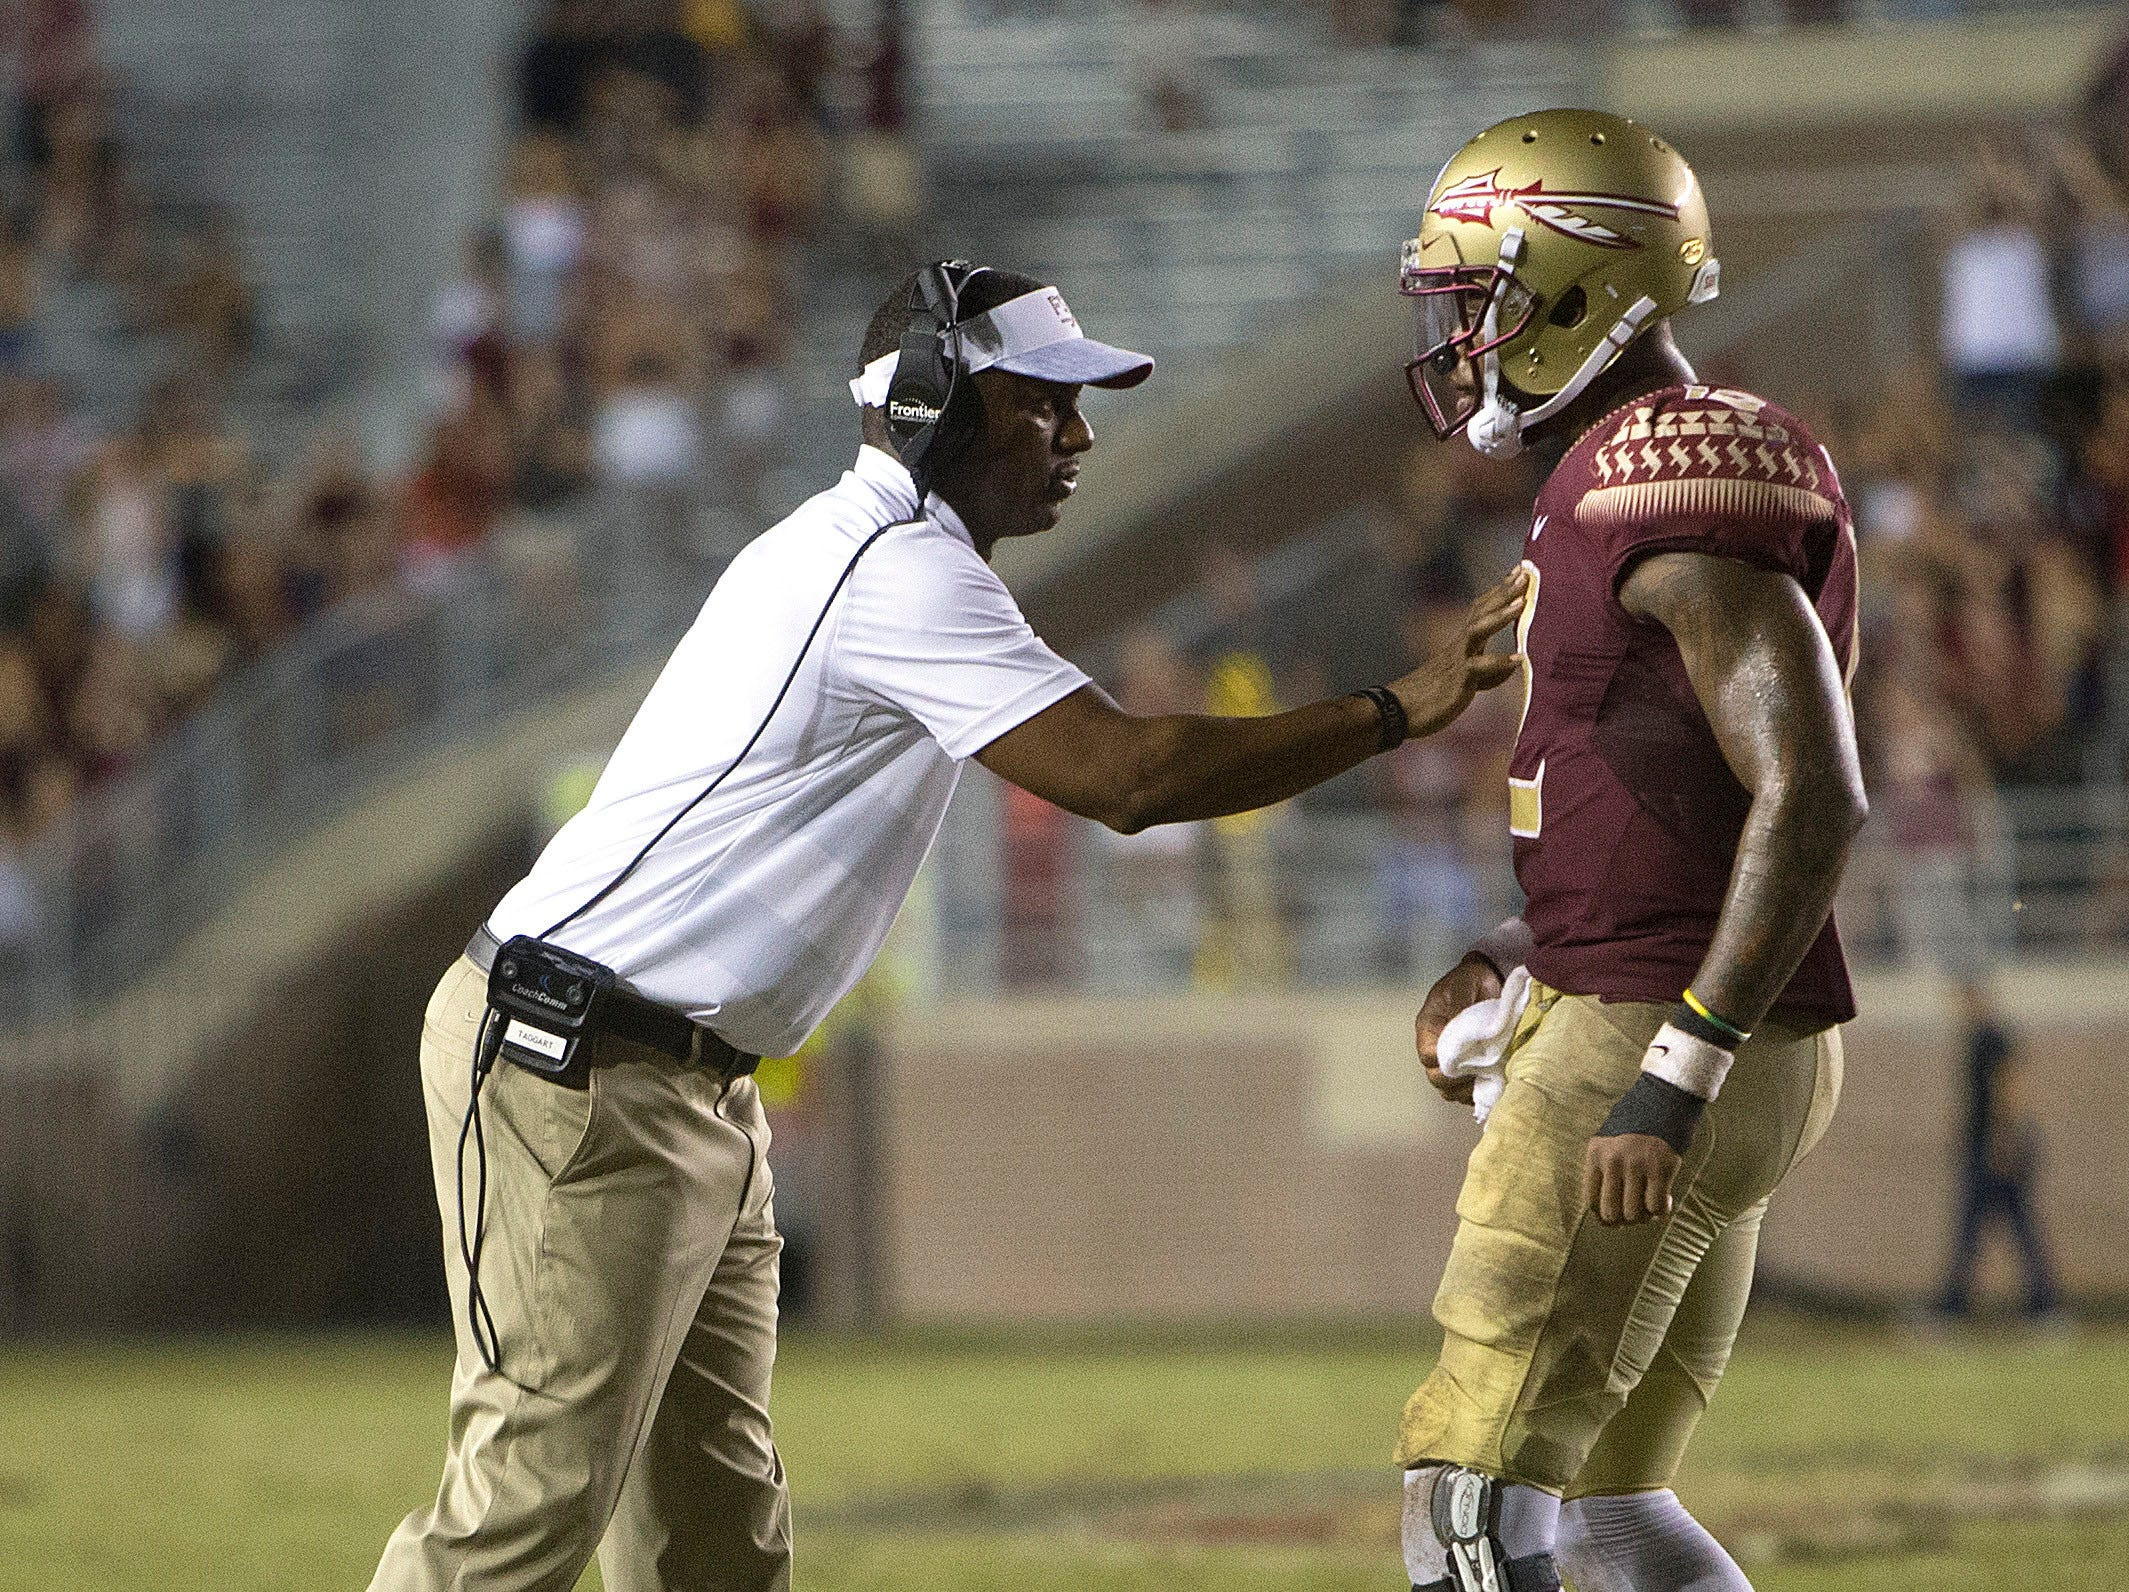 Florida State Seminoles head coach Willie Taggart talks to Florida State Seminoles quarterback Deondre Francois (12) during the second half of play as the Florida State Seminoles host the Samford Bulldogs at Doak Campbell Stadium. Florida State won 36-26.